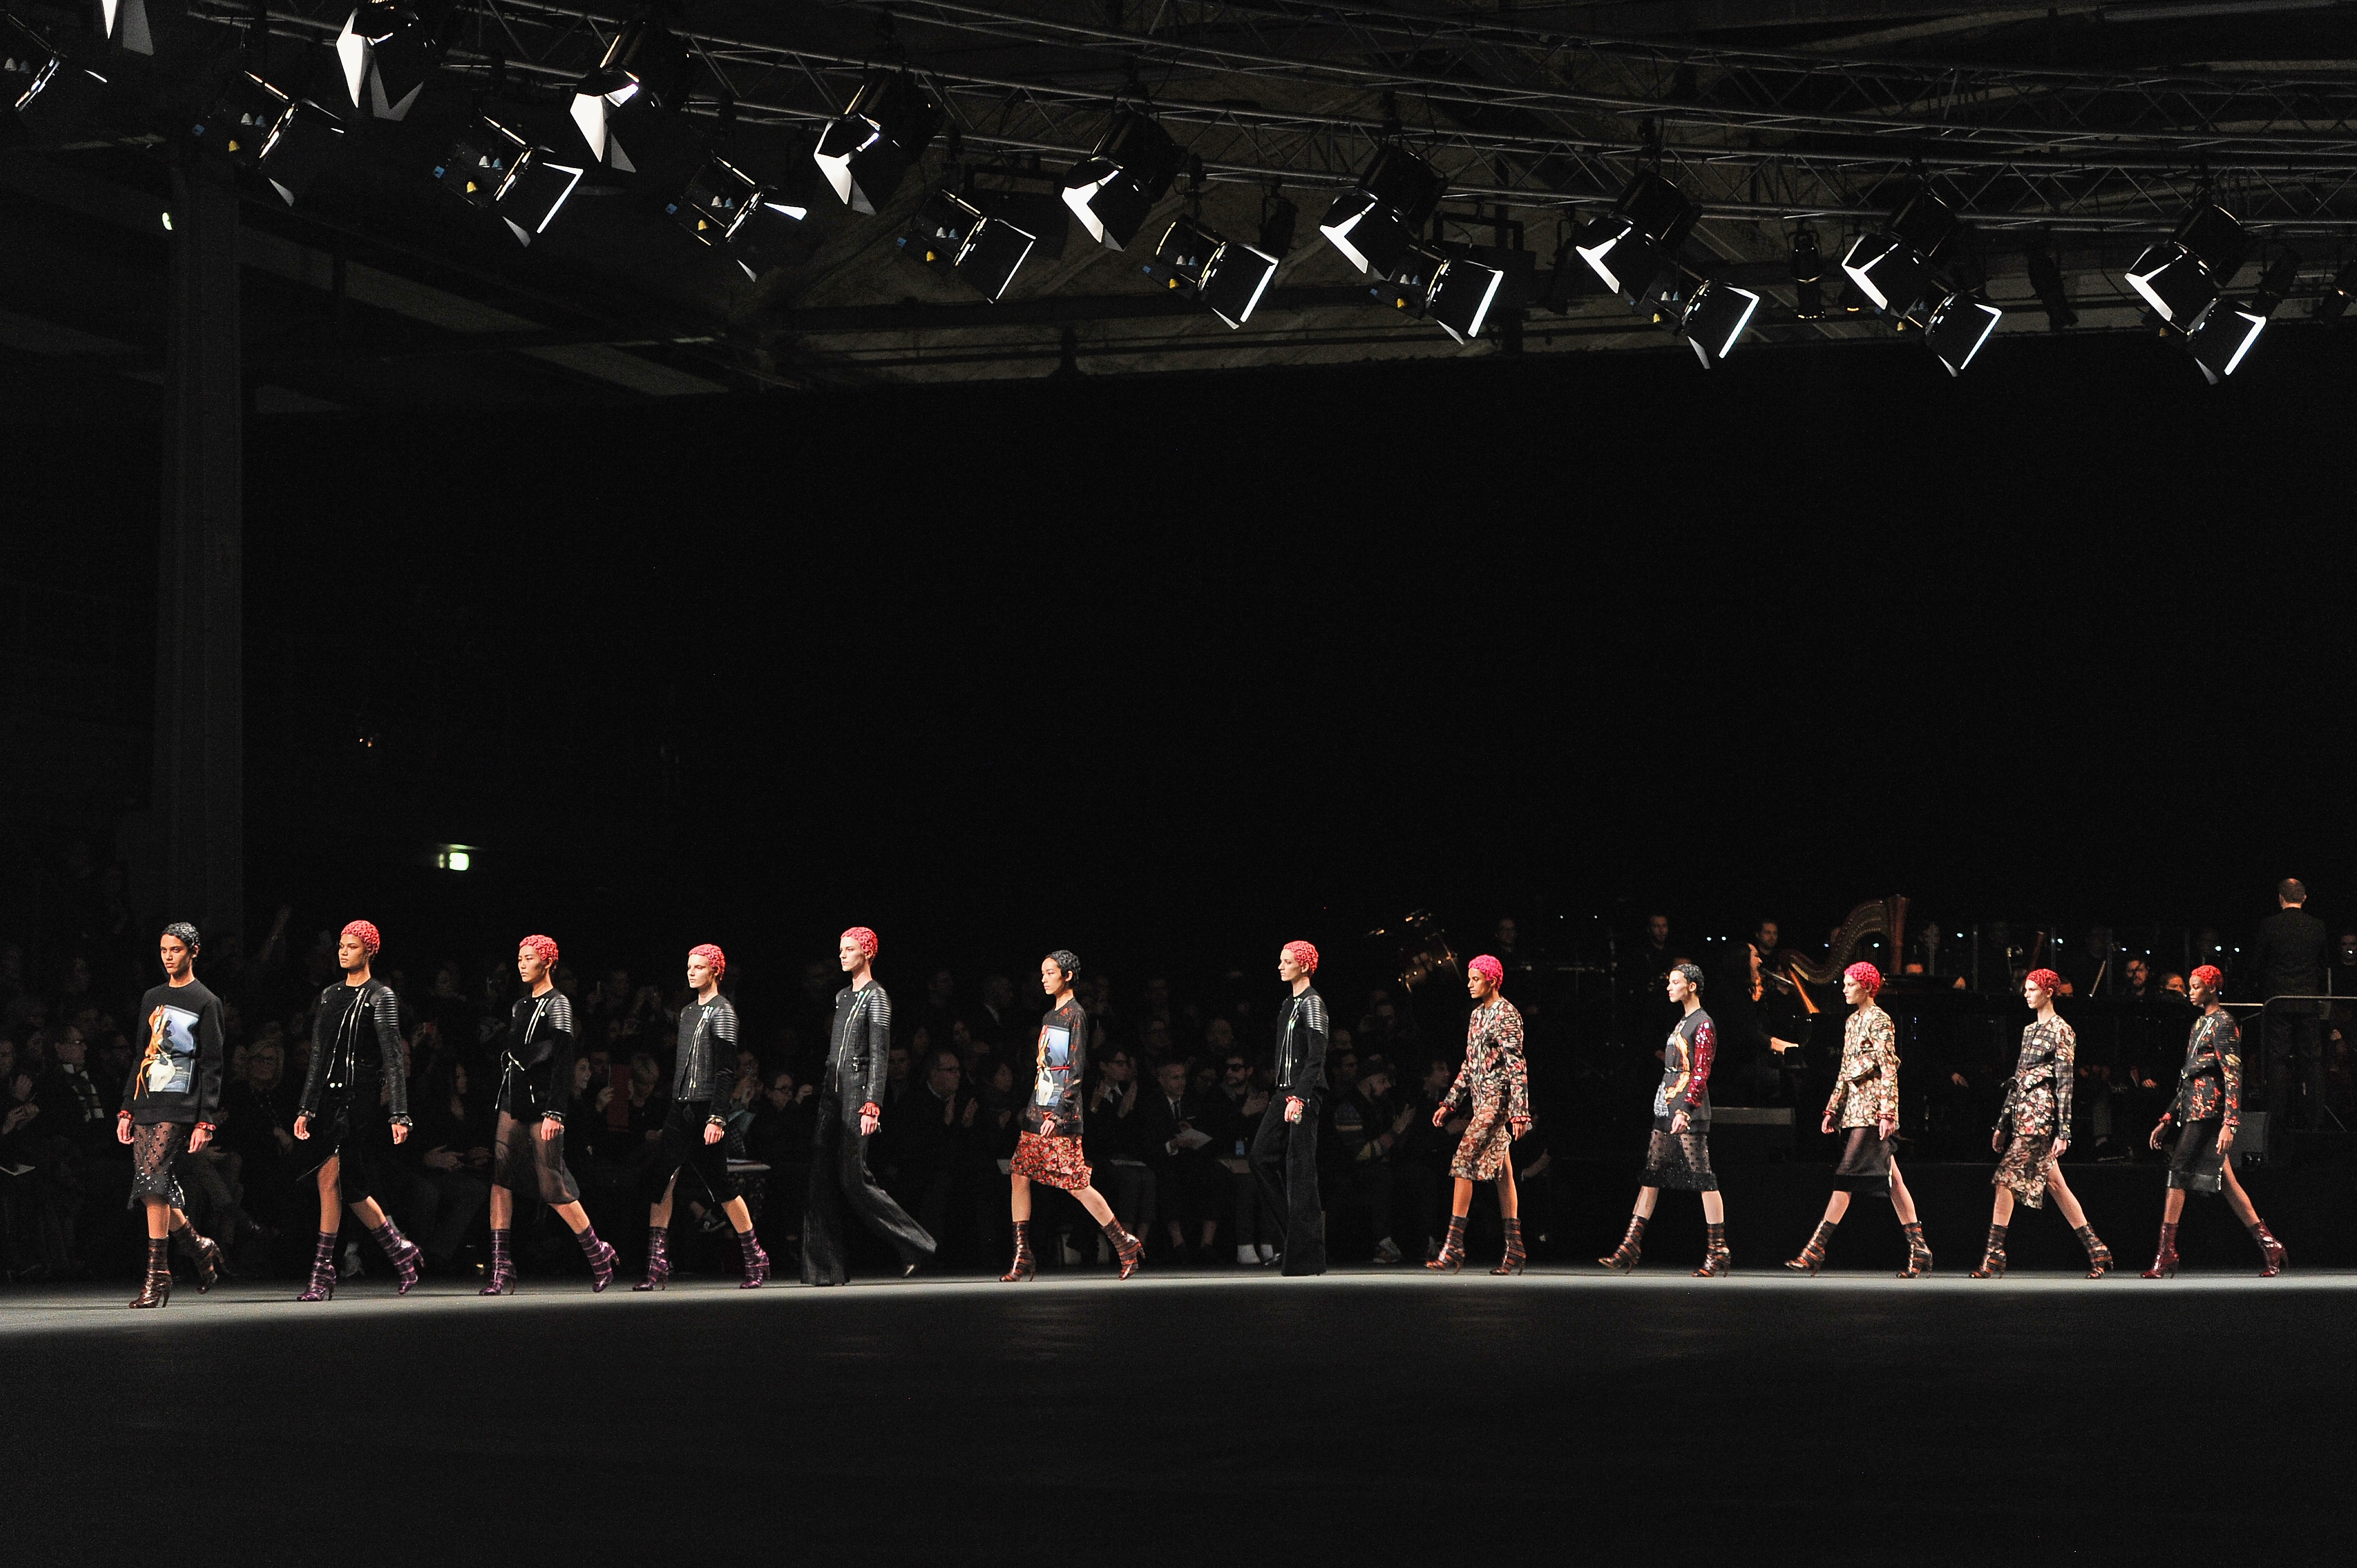 download Givenchy fashion show wallpapers and images 4219x2807